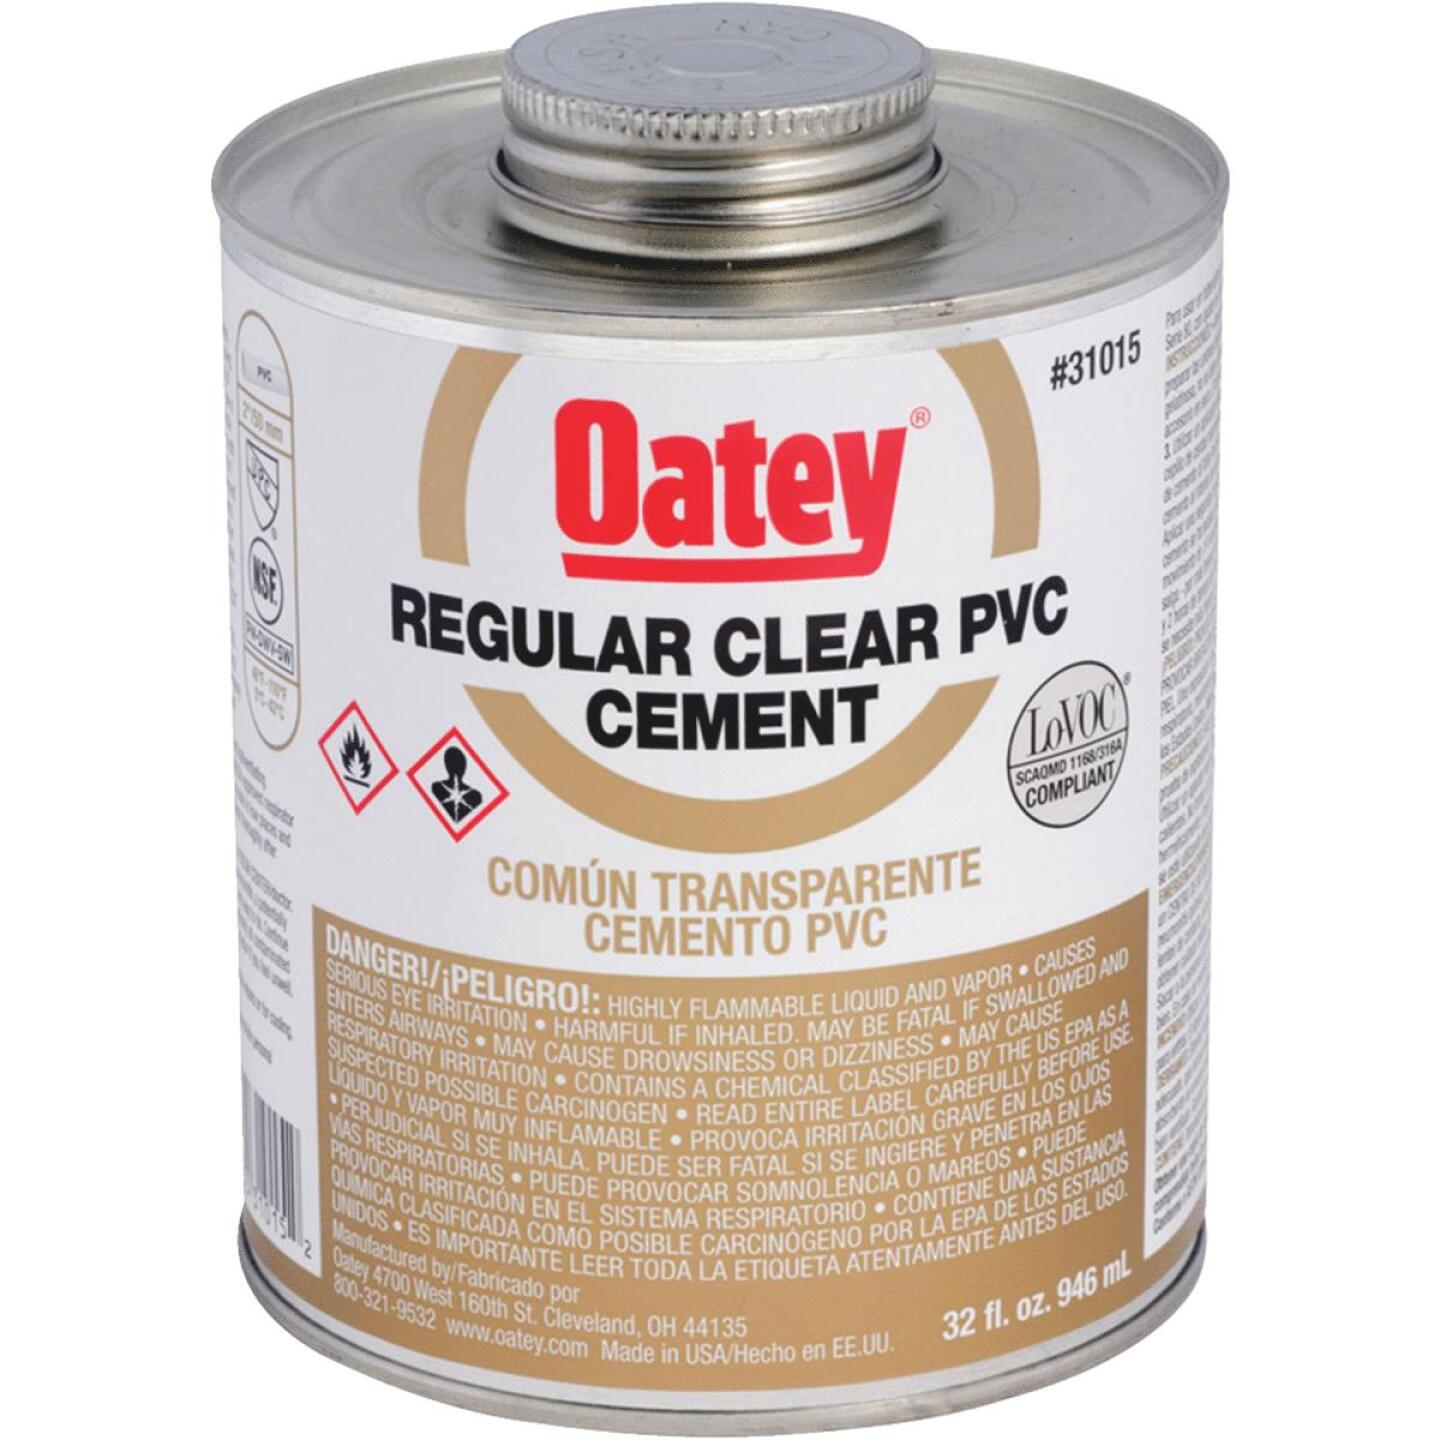 Oatey 32 Oz. Regular Bodied Clear PVC Cement Image 1